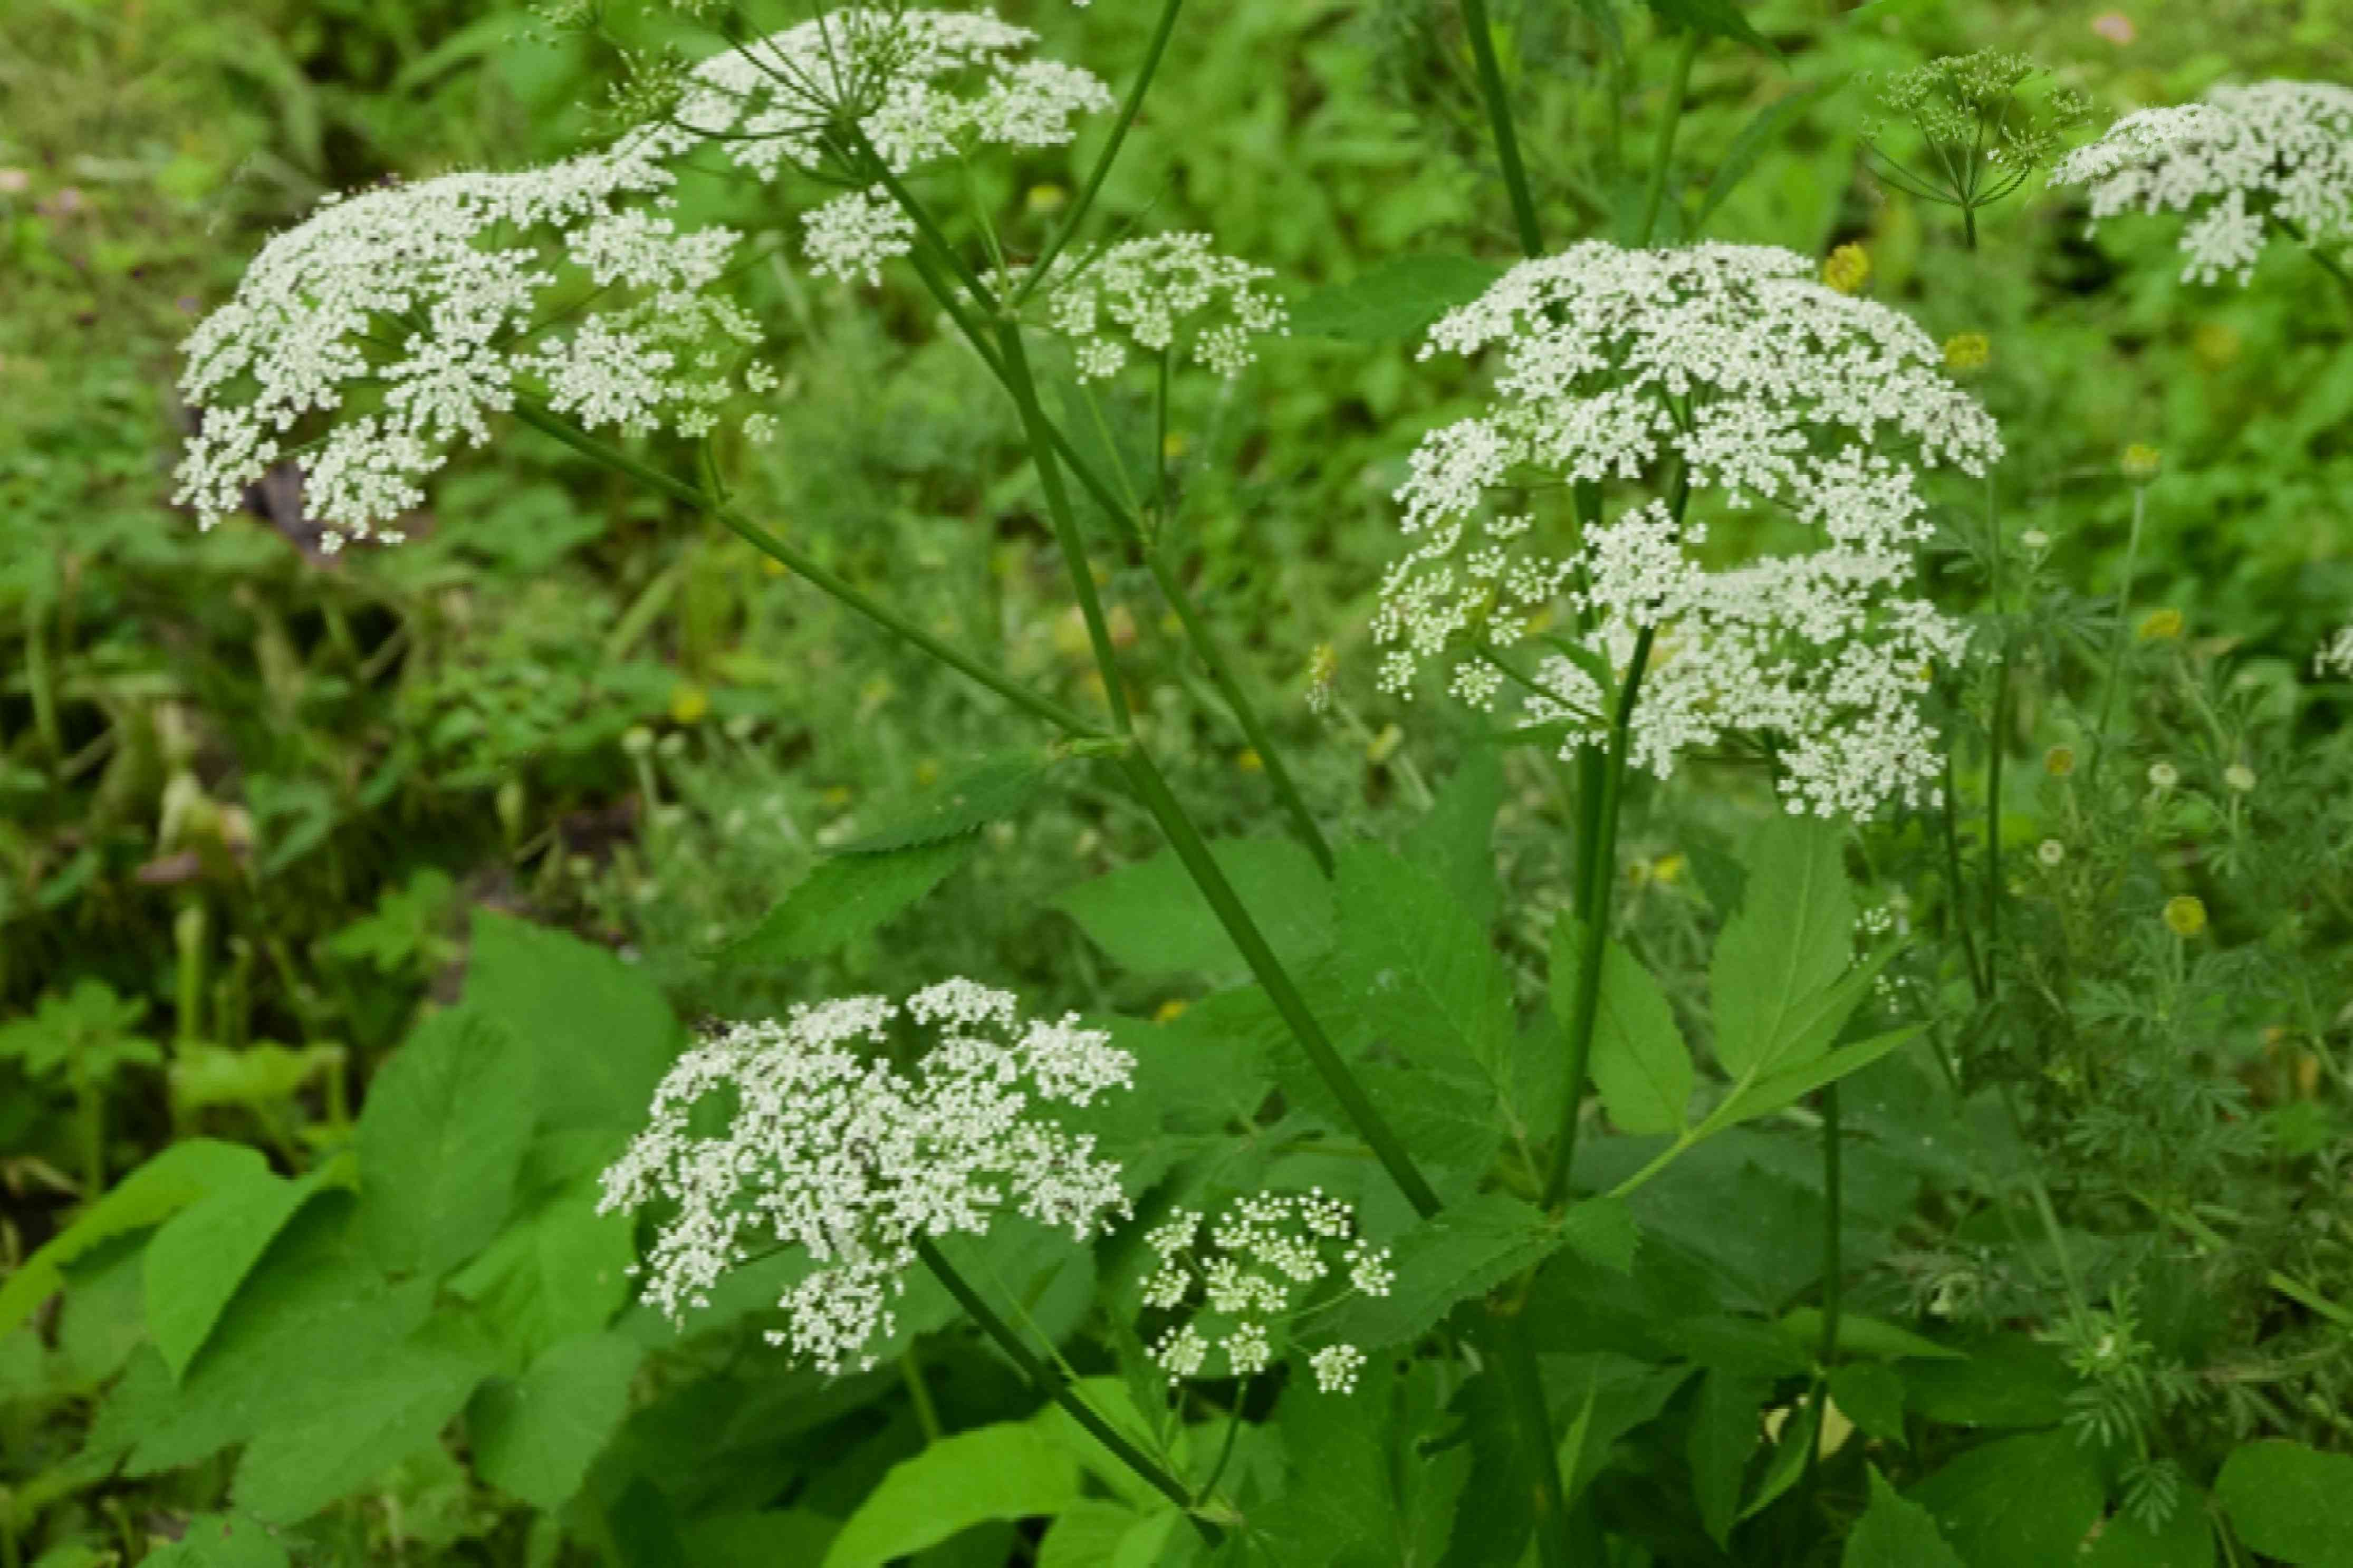 Bishop's weed plant with small white flower umbels on thin stems over leafy foliage